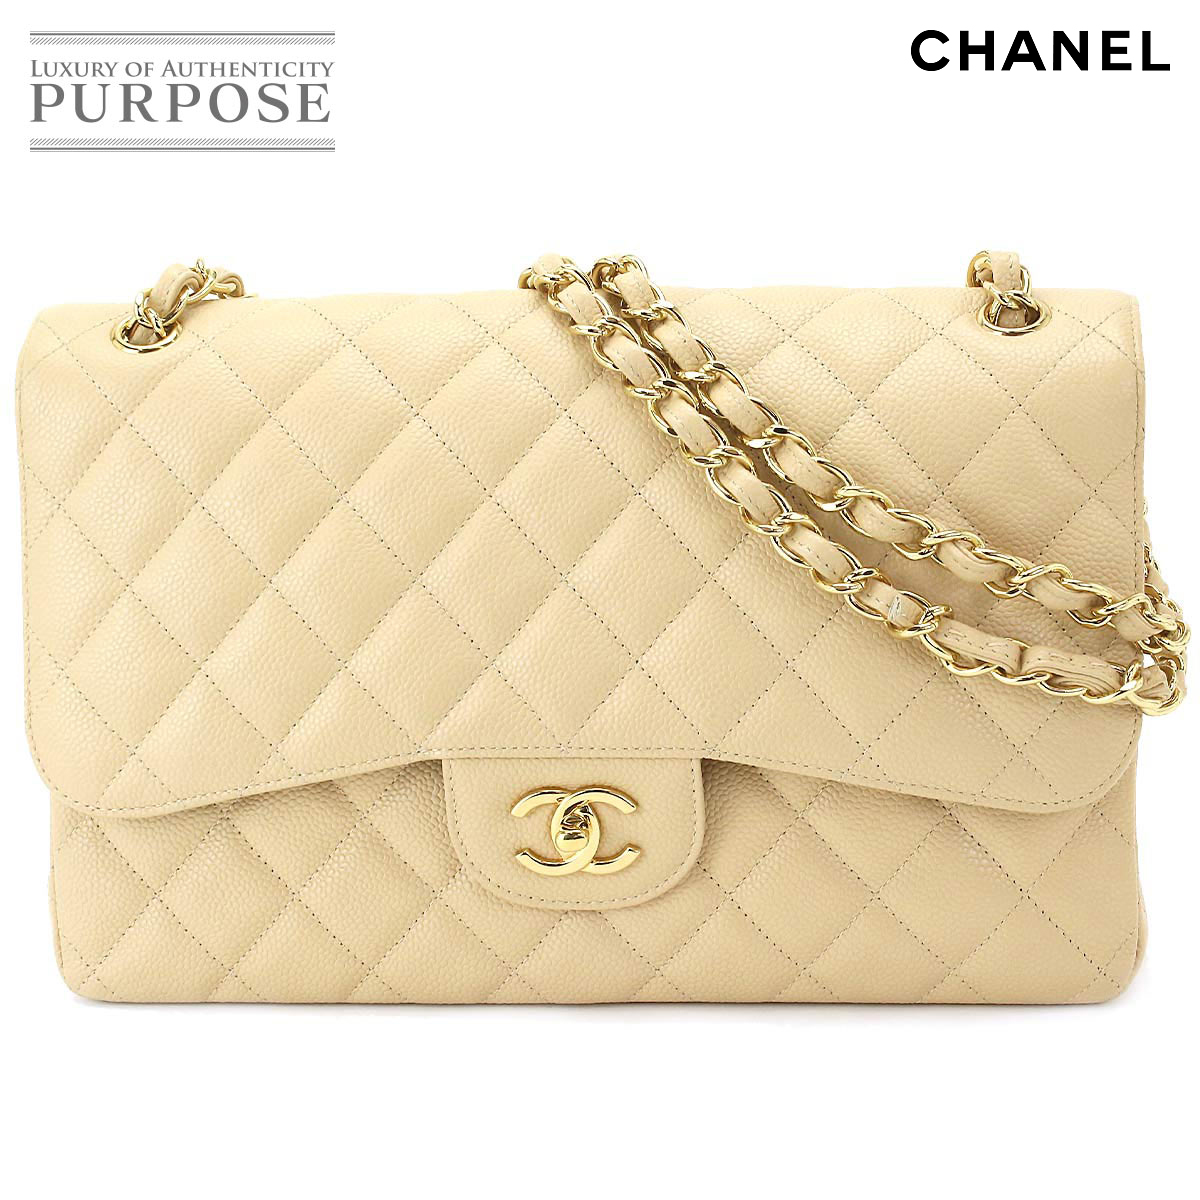 e8c1a0cf4833  unused display  Chanel CHANEL matelasse 30 chains shoulder bag caviar skin  beige A28600  used  brand